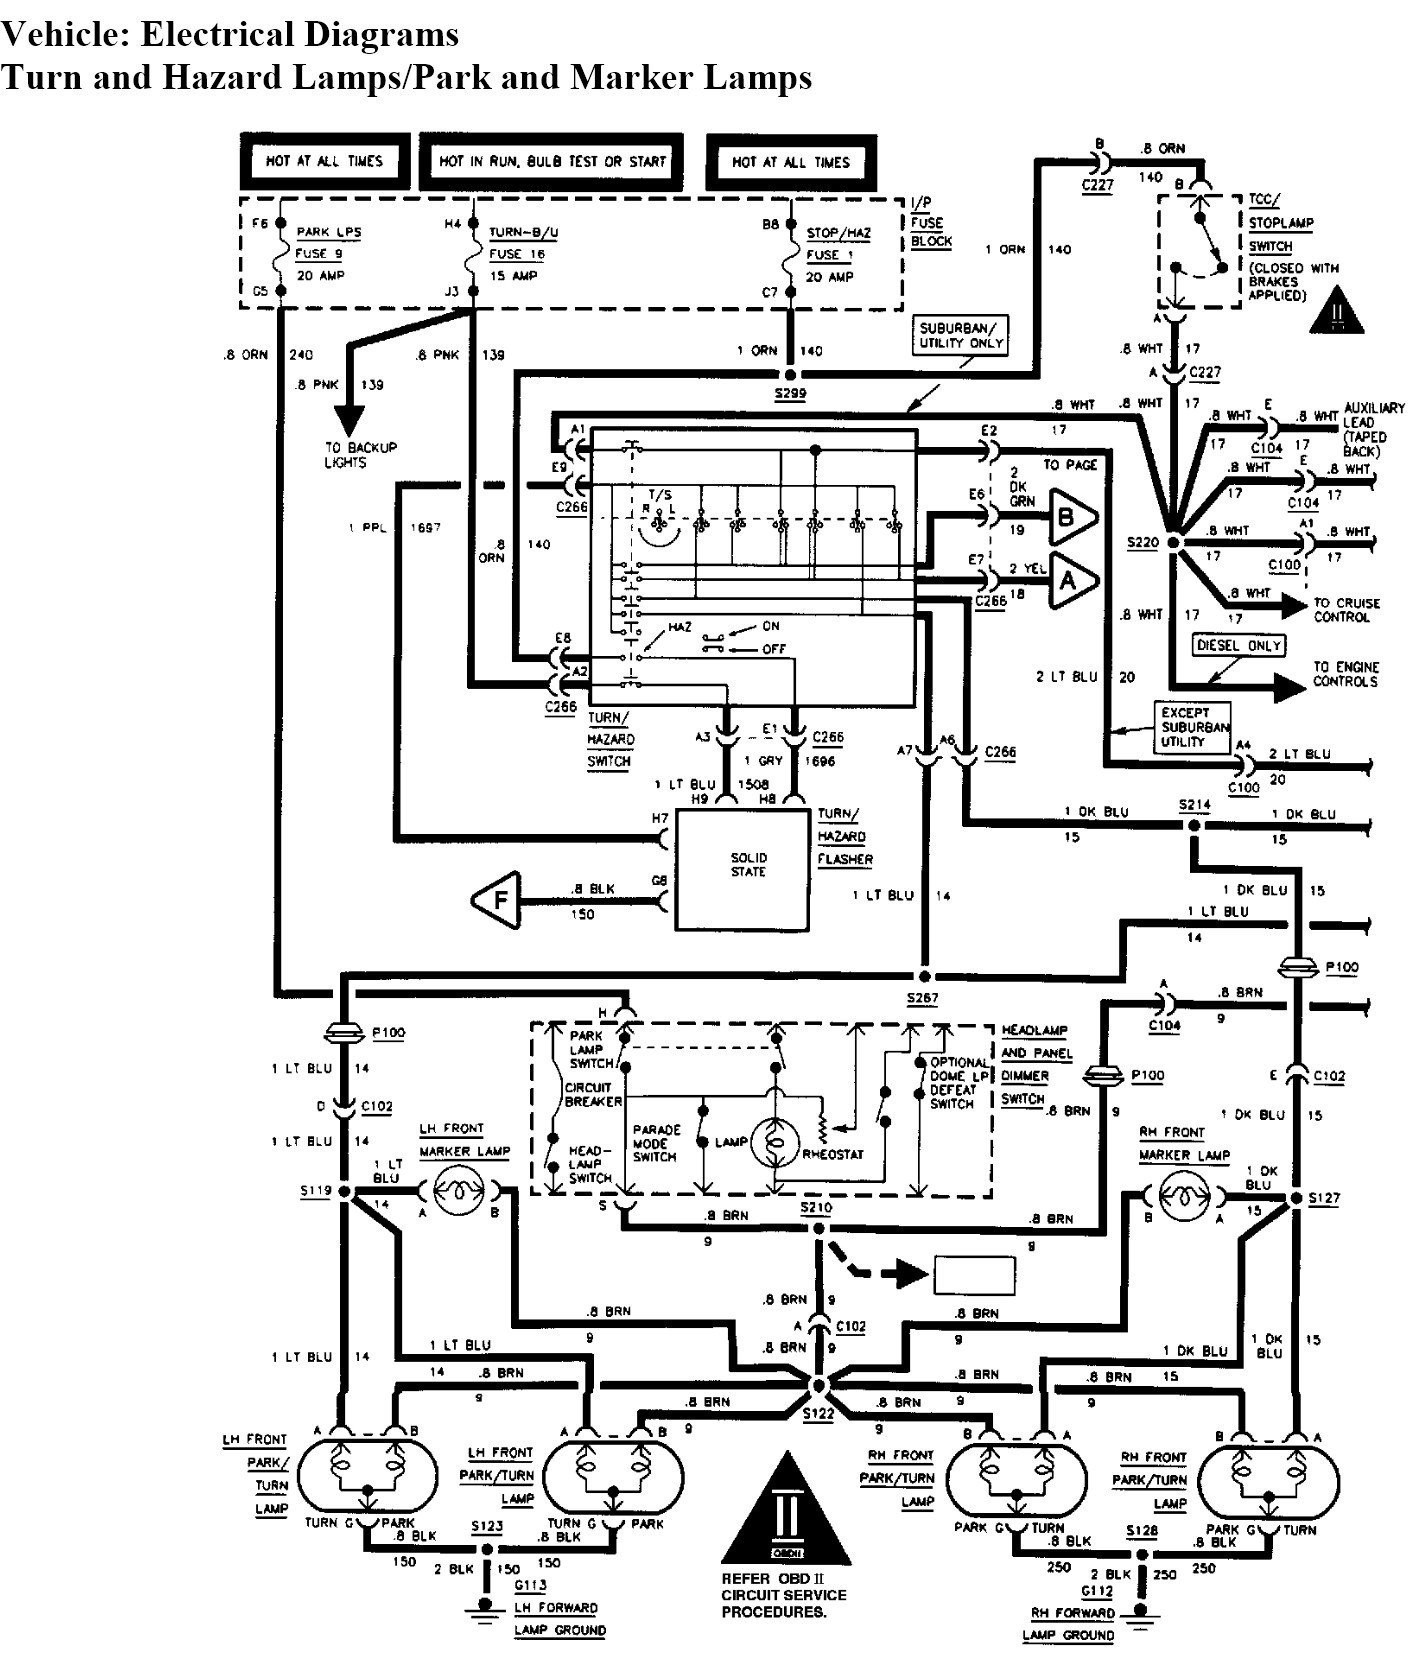 1996 Jeep Cherokee Engine Diagram | Wiring Liry Jeep Grand Cherokee Laredo Engine Diagram on jeep cj7 engine diagram, 89 jeep cherokee engine diagram, jeep grand cherokee front suspension diagram, 2001 jeep cherokee rear brake diagram, jeep liberty 3.7, jeep wrangler 2.5 engine diagram, jeep cherokee 4.0 engine diagram, 1997 jeep grand cherokee vacuum line diagram, jeep grand wagoneer engine diagram, jeep tj engine diagram, jeep cherokee sport engine diagram, 1998 jeep cherokee transfer case diagram, 1989 jeep cherokee engine diagram, 1999 jeep cherokee exhaust system diagram, jeep 4.7 engine diagram, jeep grand cherokee automatic transmission sensor, jeep compass engine diagram, jeep comanche engine diagram, jeep grand cherokee 2001 4.7 v8 engine, cj jeep engine diagram,